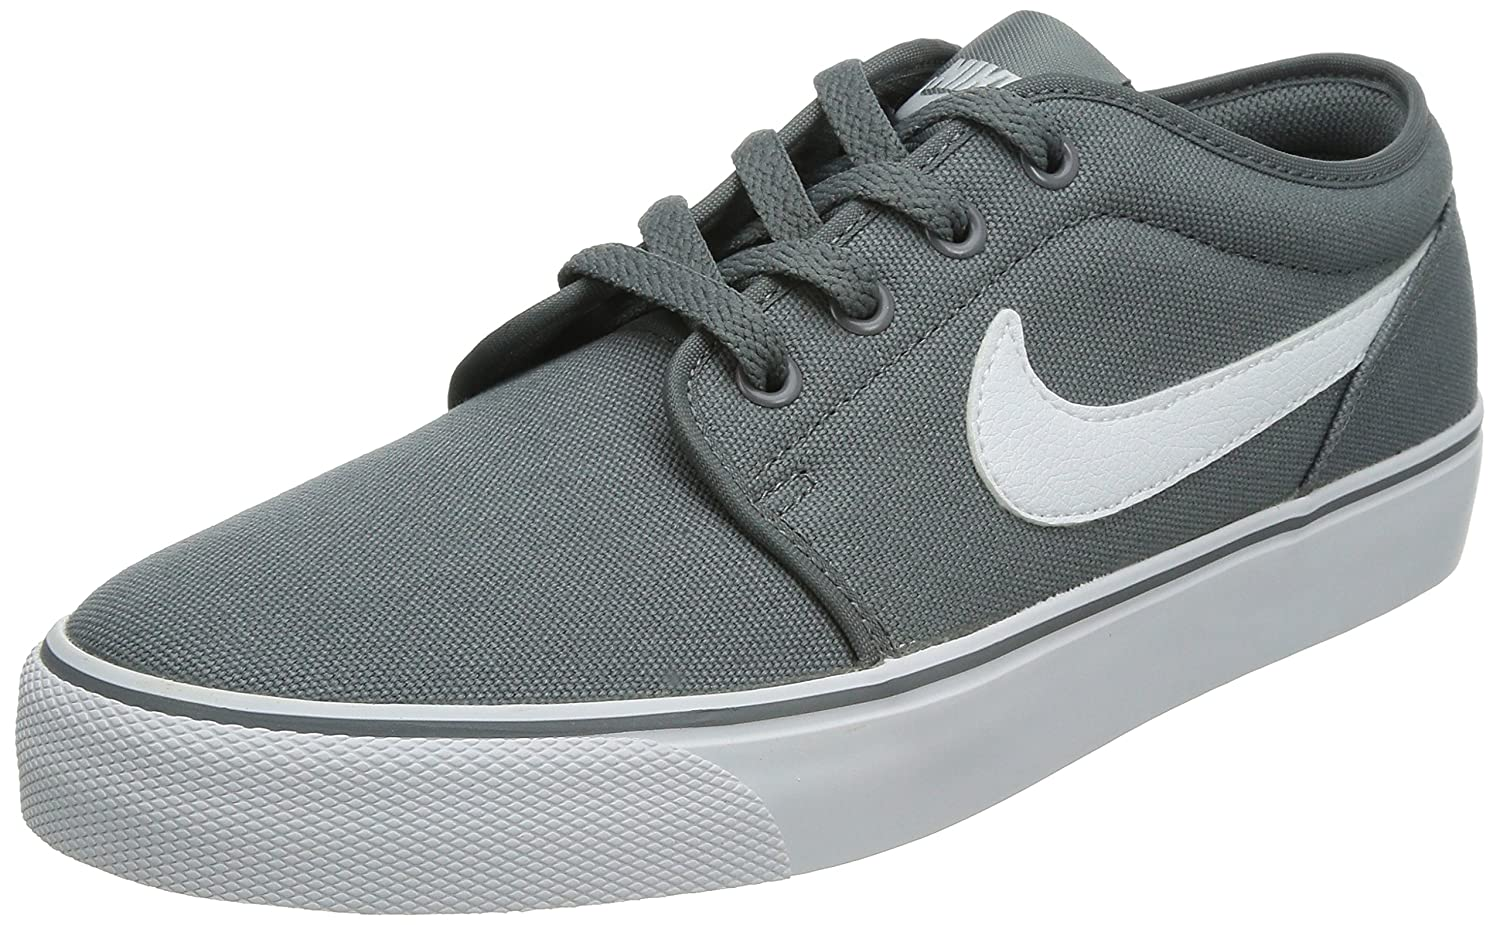 Nike Chaussures Hommes Occasionnels 0dBSJx